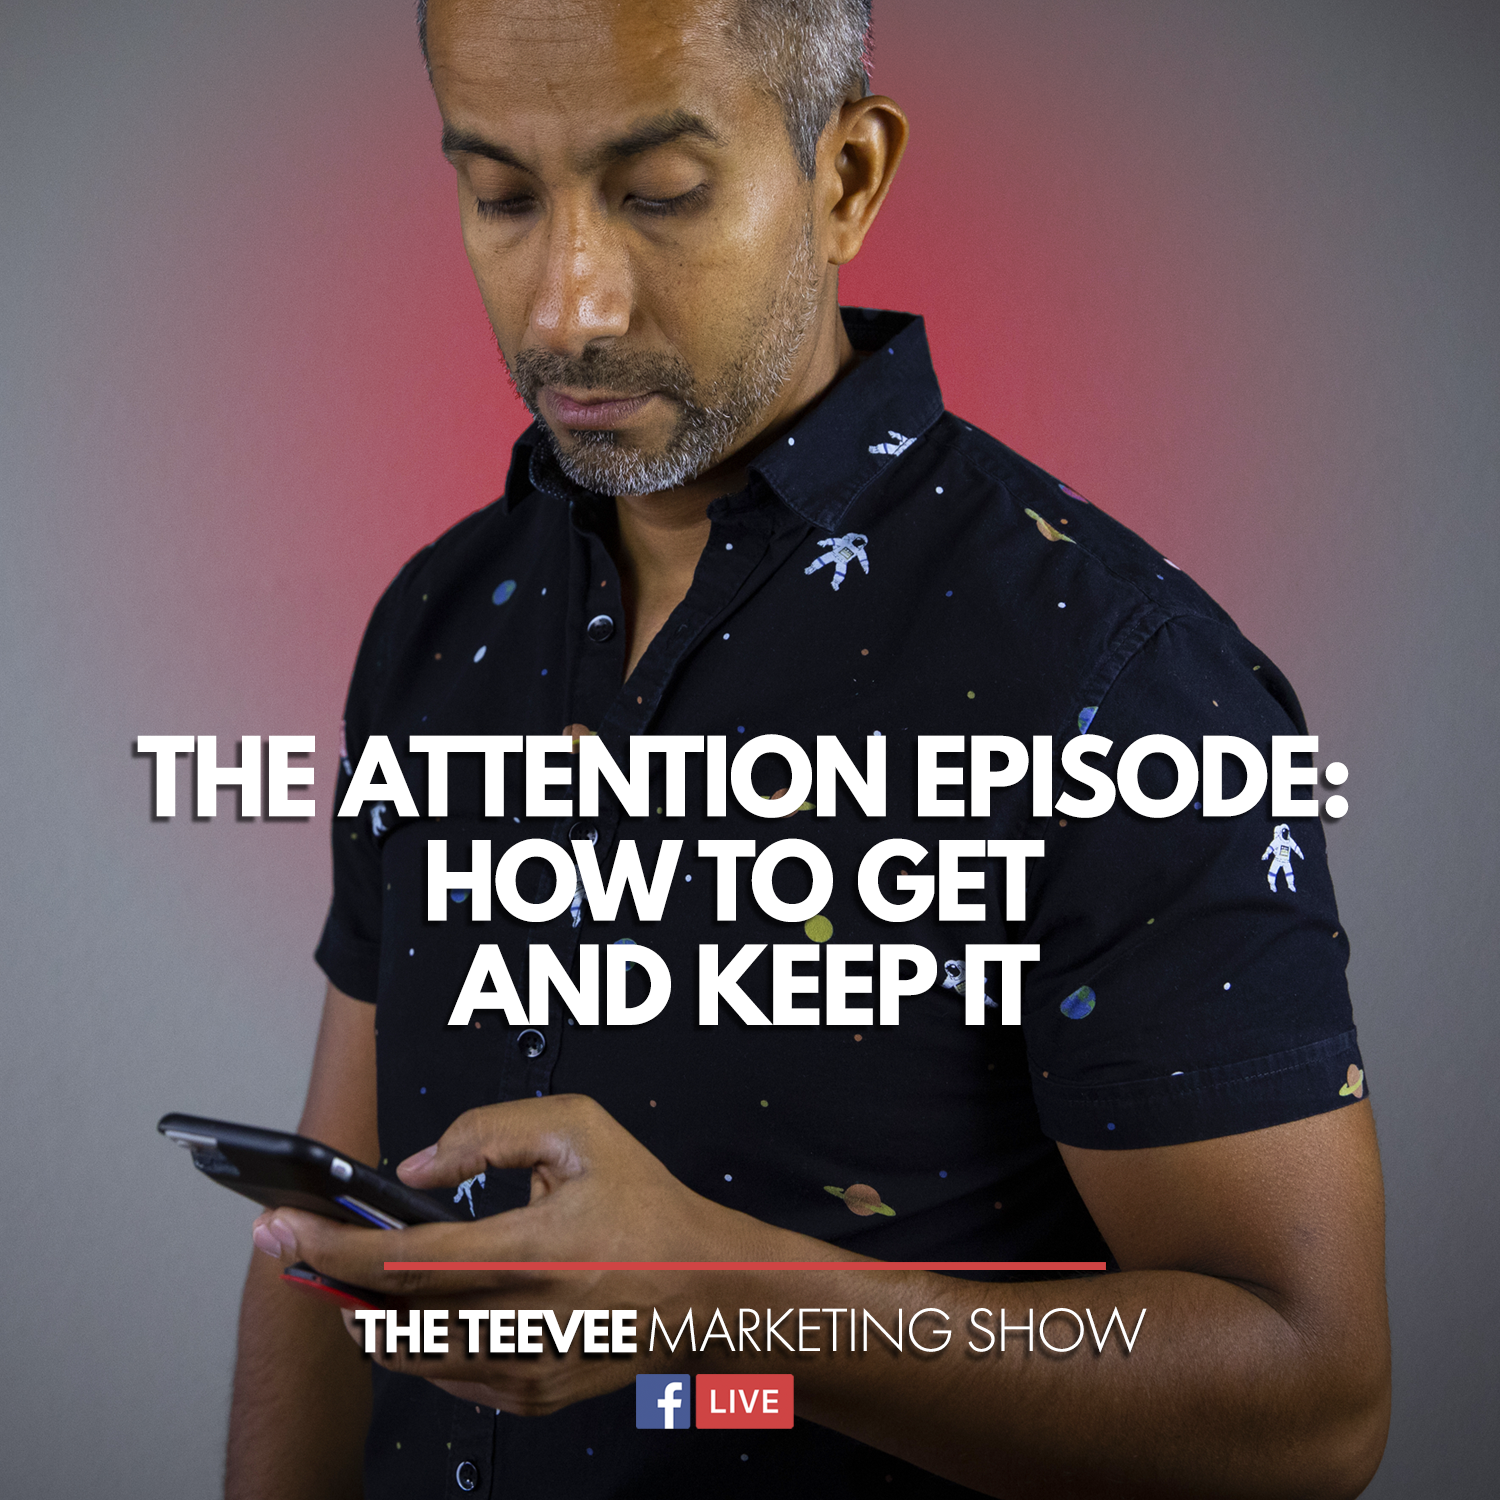 The Teevee Marketing Show EP3 | The Attention Episode